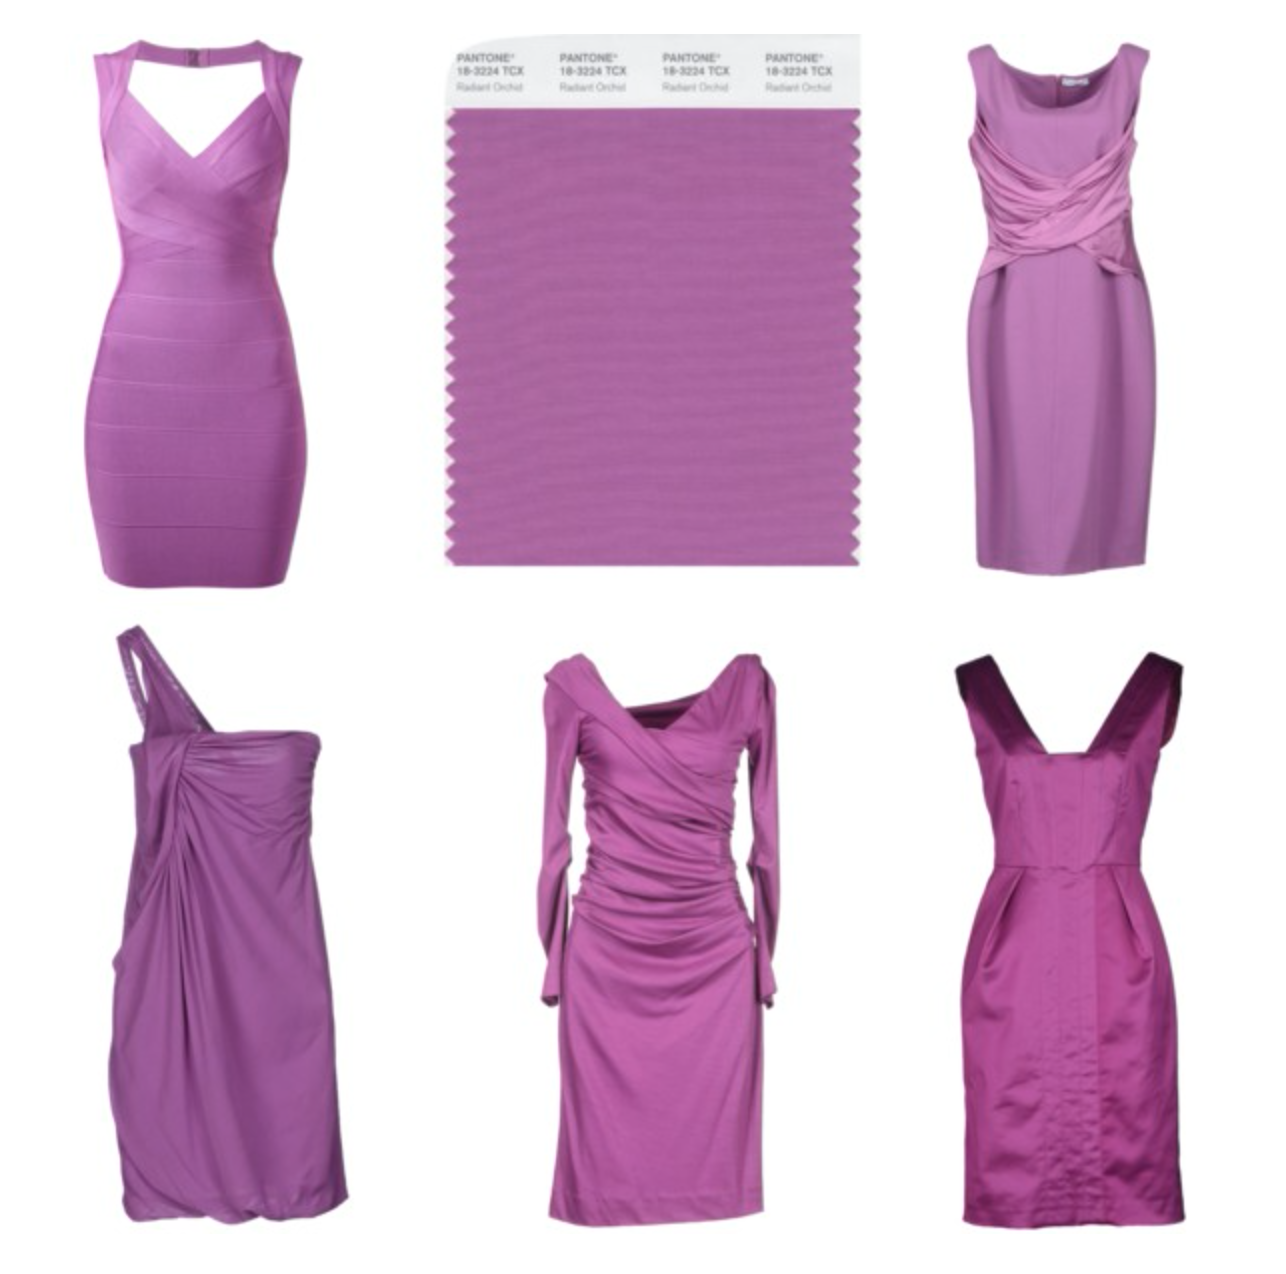 How to wear the Pantone color Radiant Orchid - Dresses ...